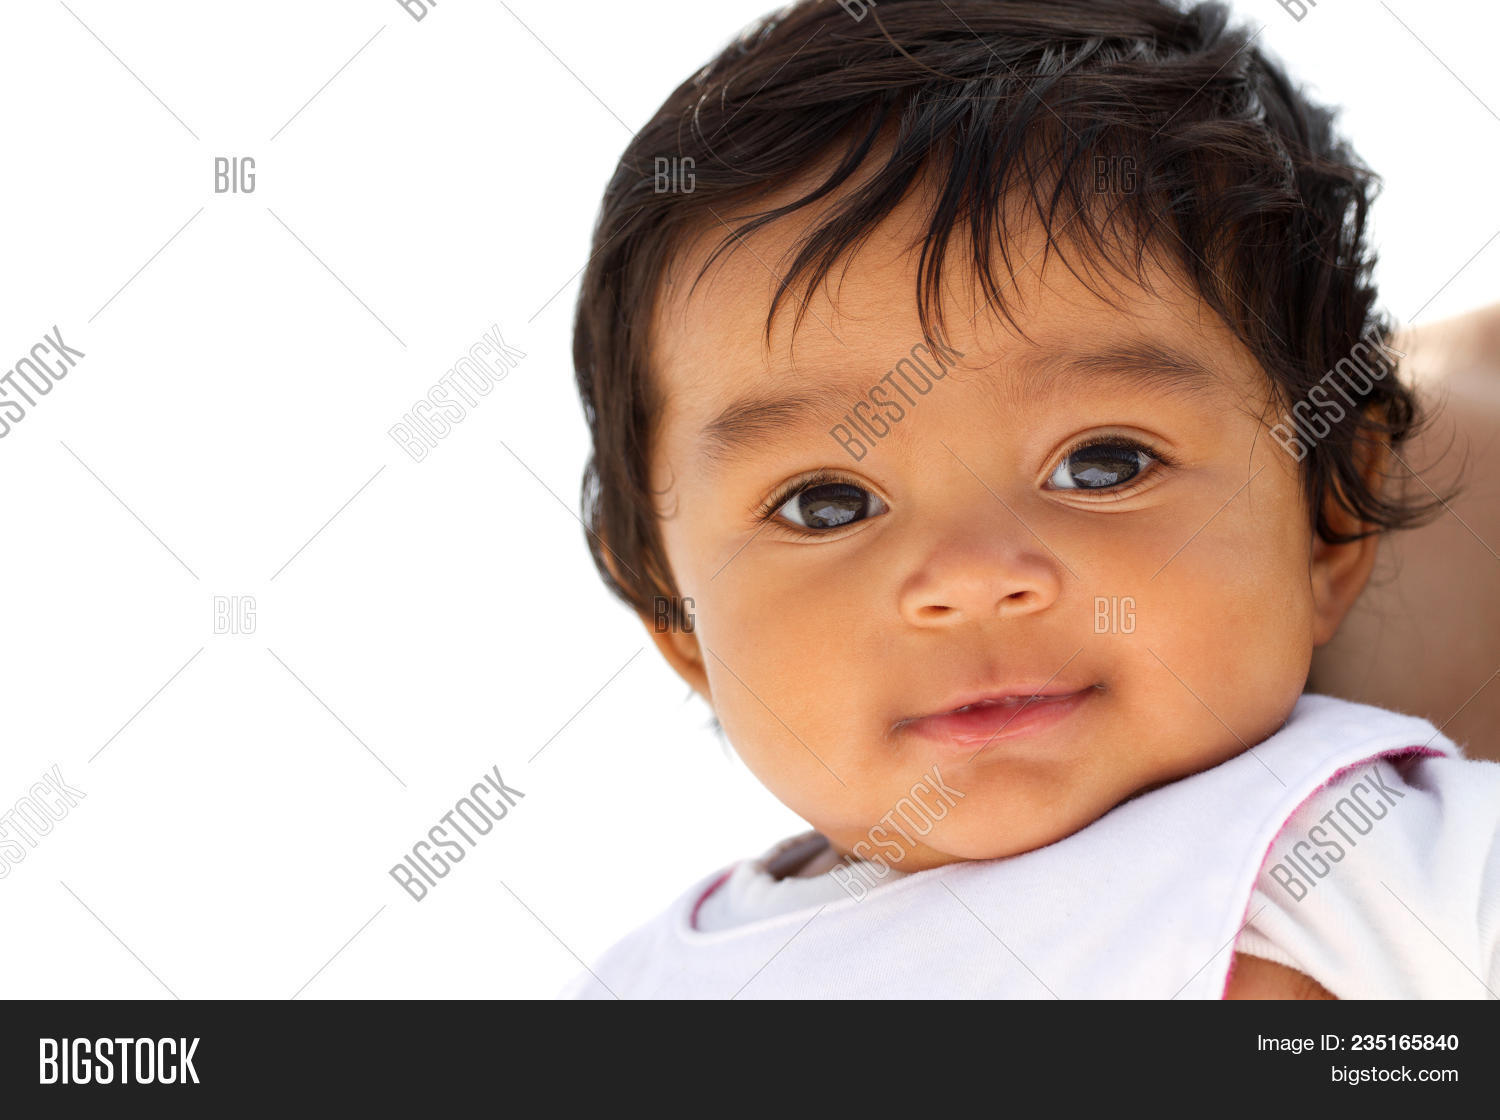 American,Babies,Baby,Babyhood,Background,Beginnings,Camera,Close-up,Clothing,Color,Content,Copy,Cut,Cute,Ethnicity,Expression,Facial,Family,Girl,Girls,Happiness,Headshot,High,Hispanic,Horizontal,Image,Innocence,Key,Latin,Life,Lifestyles,Looking,Months,New,One,Only,Out,People,Person,Photography,Portrait,Shot,Smiling,Space,Studio,White,and,head